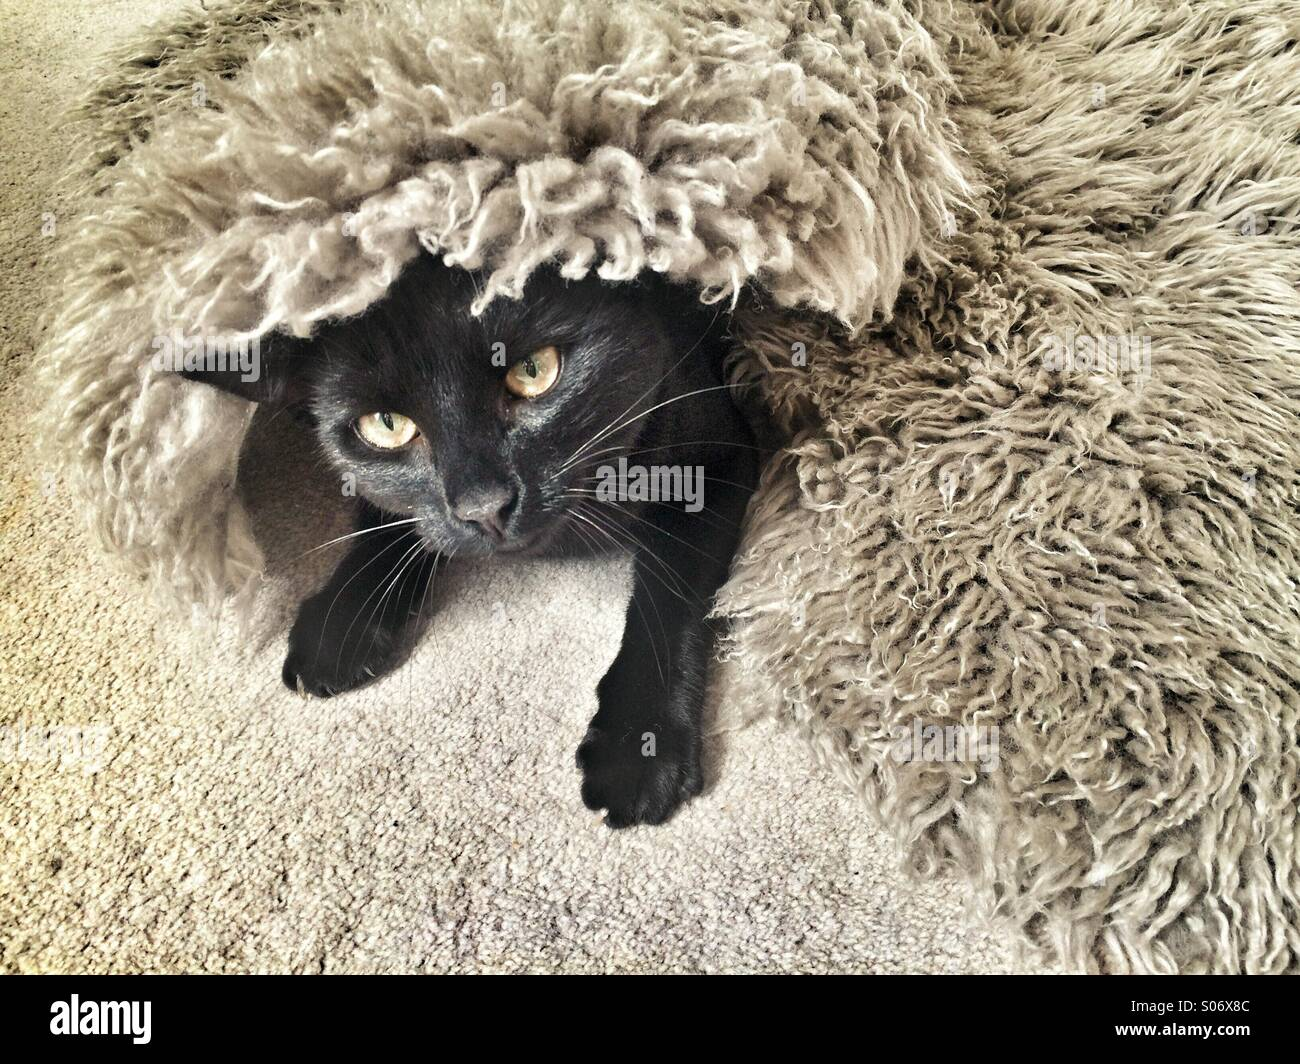 a black cat hiding